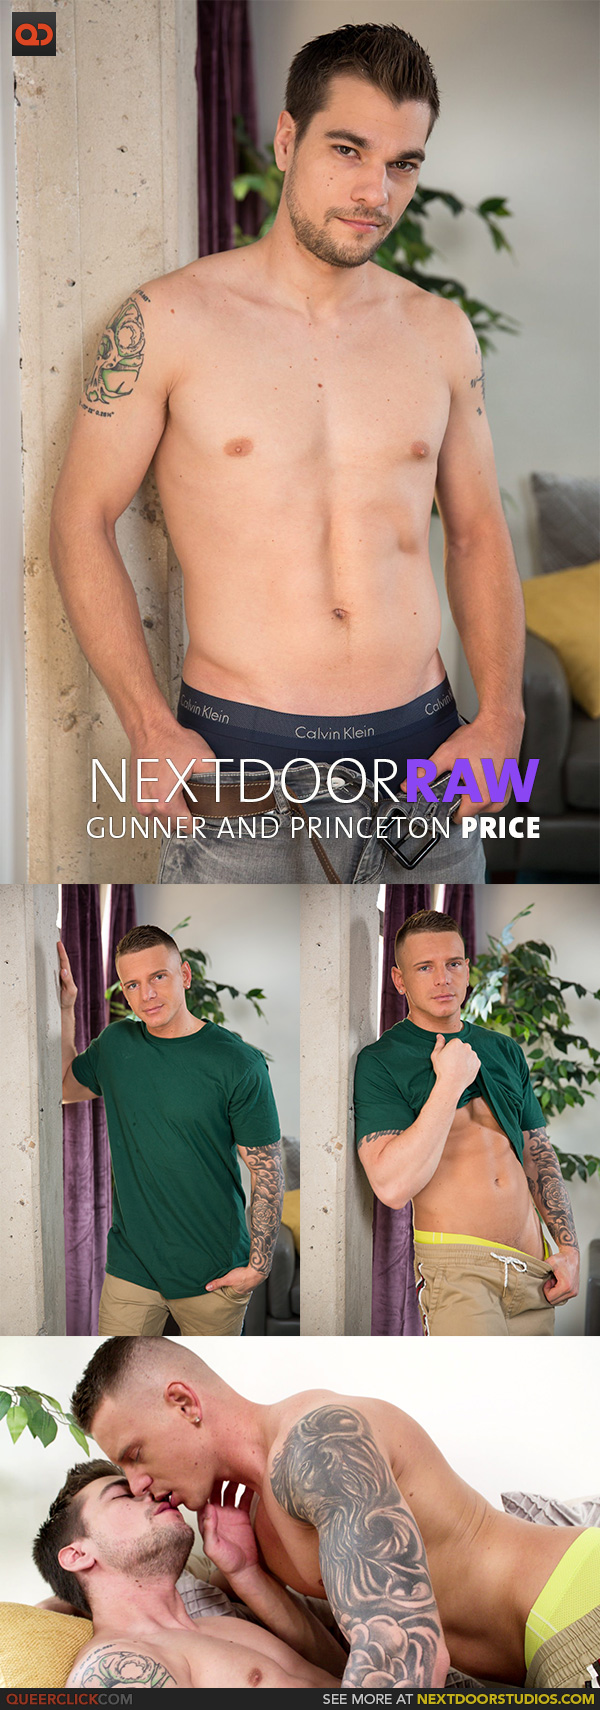 Next Door Studios: Gunner and Princeton Price